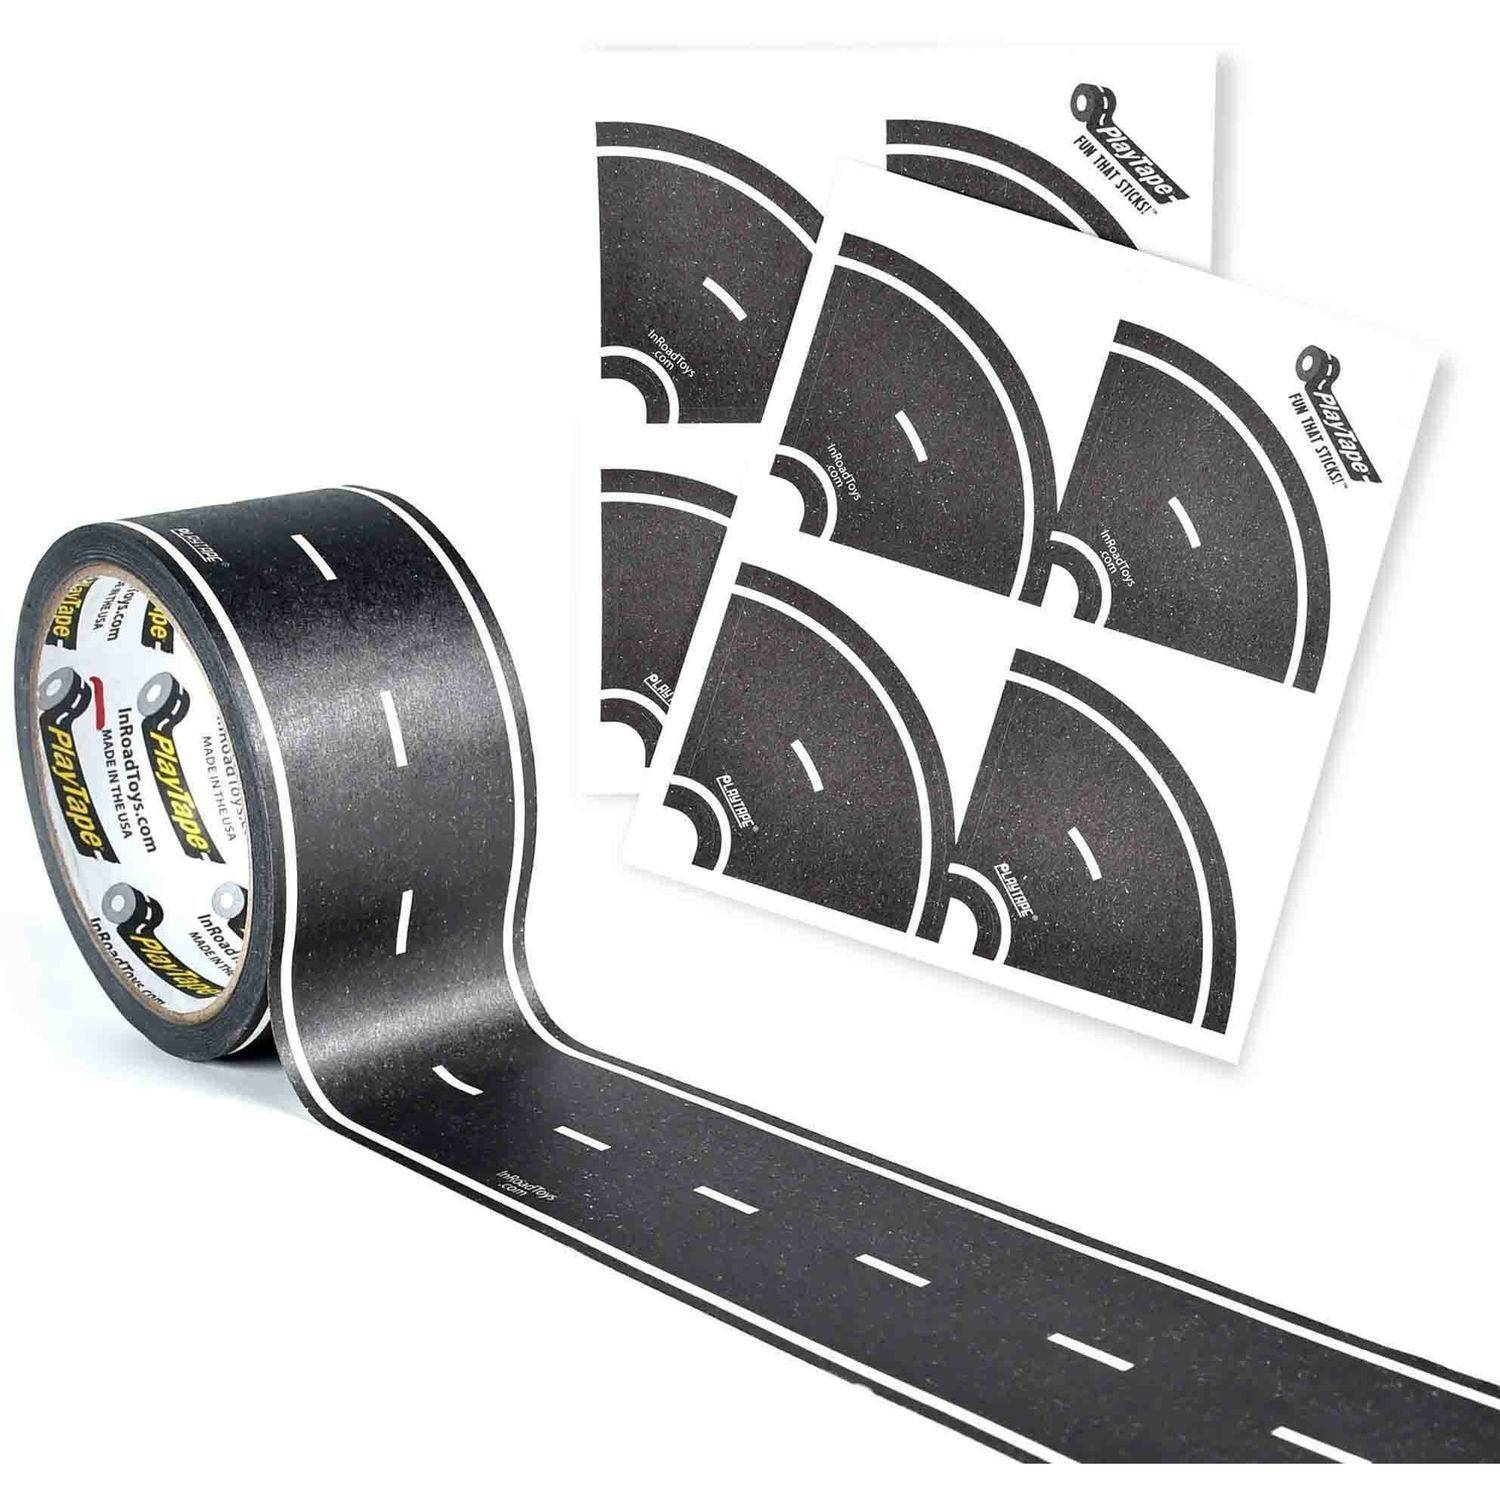 "PlayTape Classic Road Series 30' x 4"" Road with 4 Tight Curves, Black"